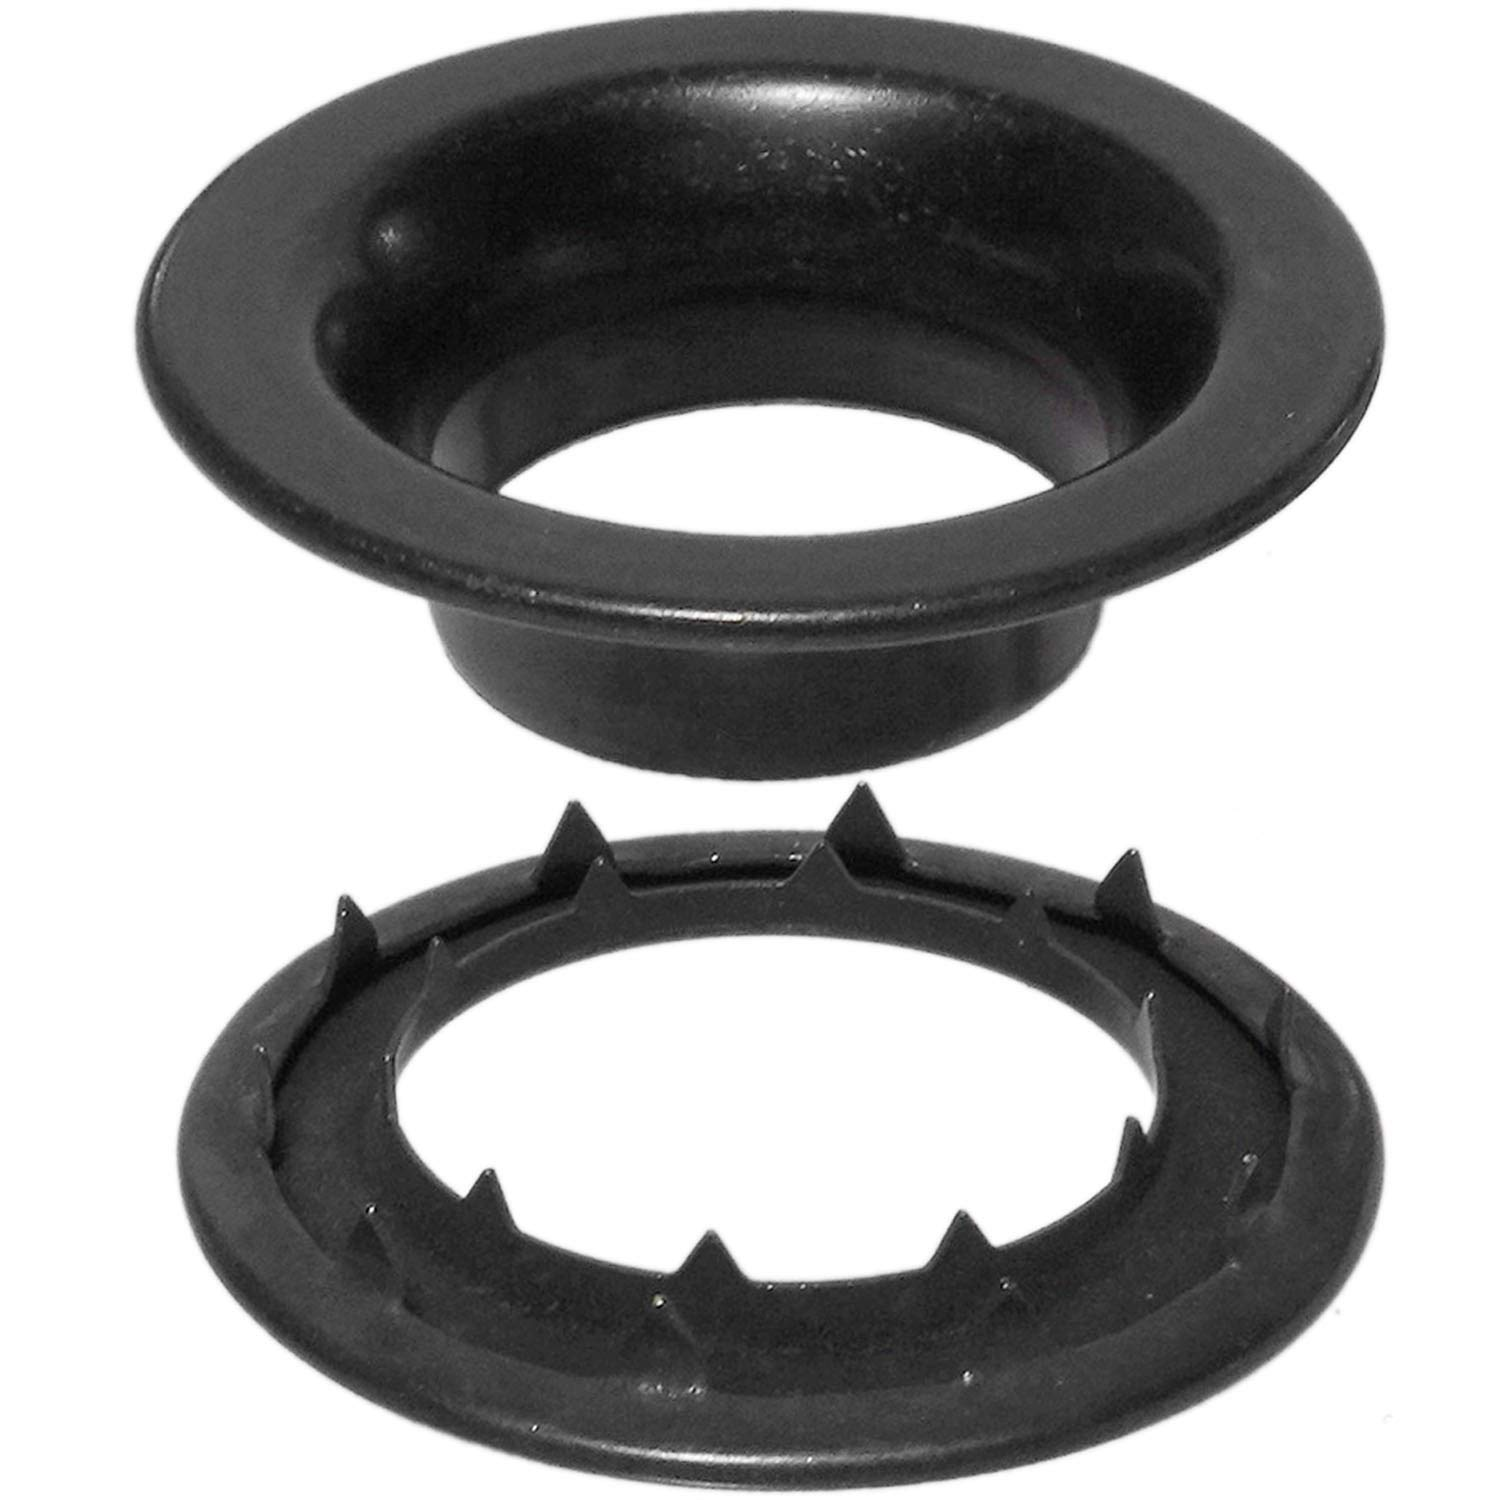 Stimpson Rolled Rim Grommet and Spur Washer Dull Black Chem Durable, Reliable, Heavy-Duty #8 Set (720 Pieces of Each)